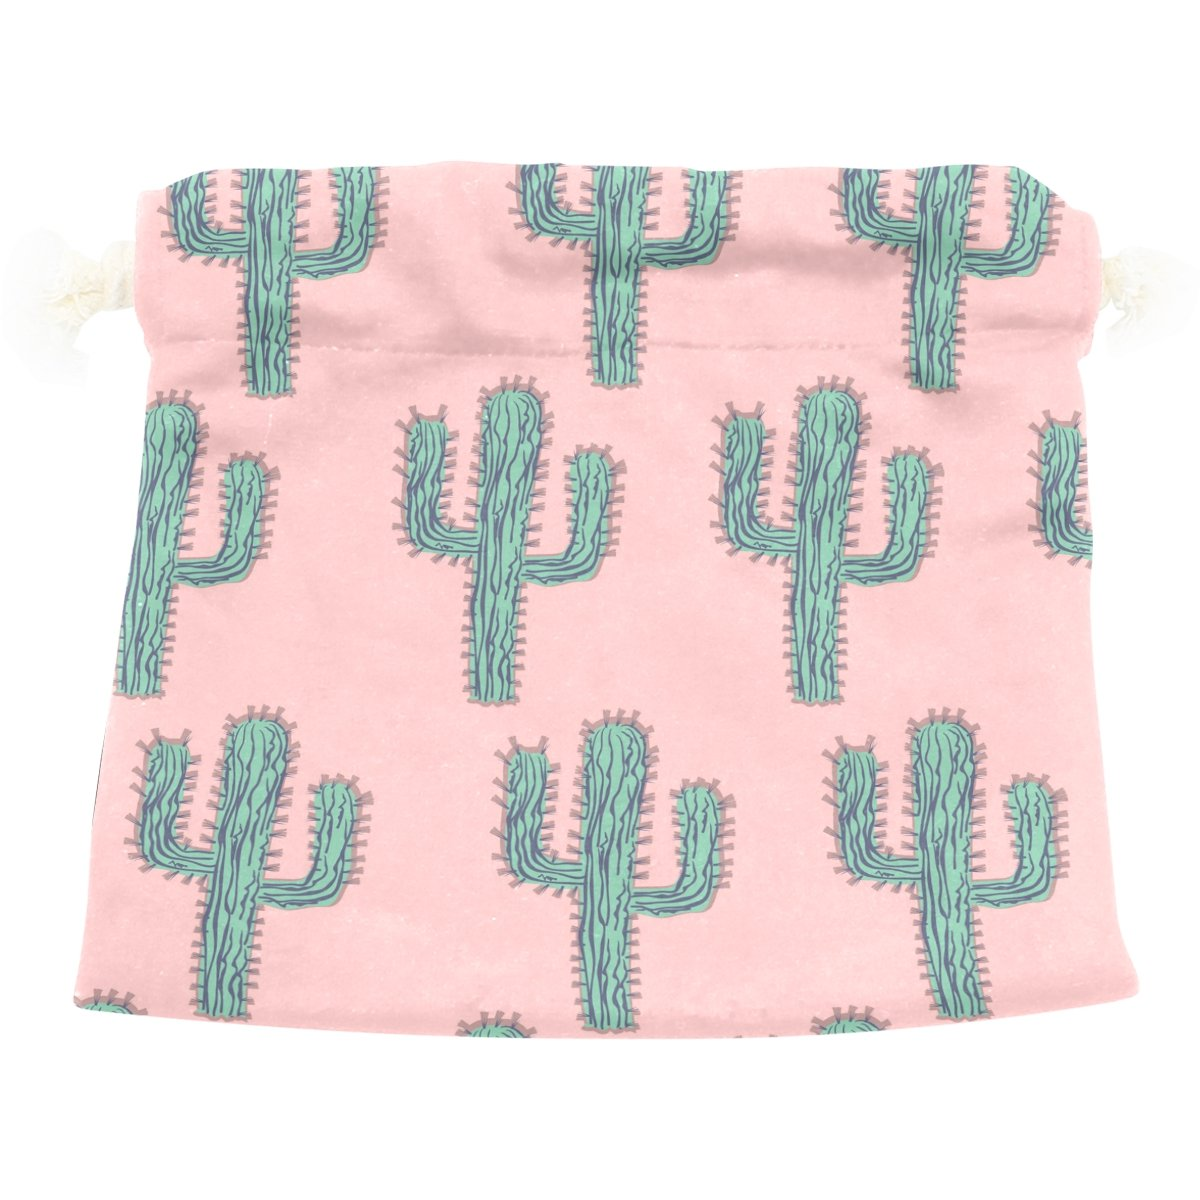 Dragon Sword Green Cactus Forest Gift Bags Jewelry Drawstring Pouches for Wedding Party, 6x8 Inch